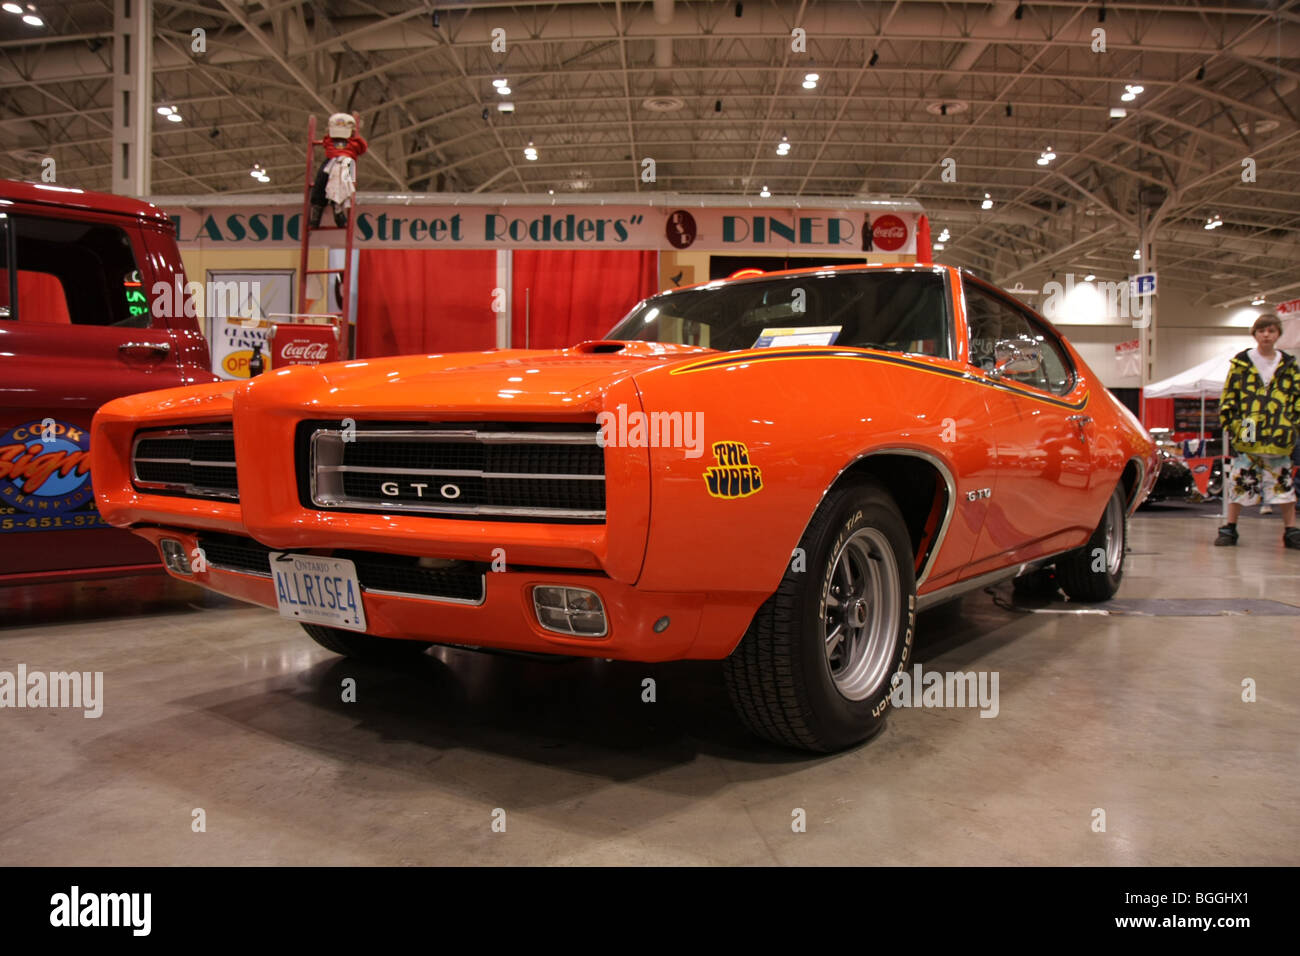 orange custom vintage classic american retro sports cars on display stock photo 27410153 alamy. Black Bedroom Furniture Sets. Home Design Ideas